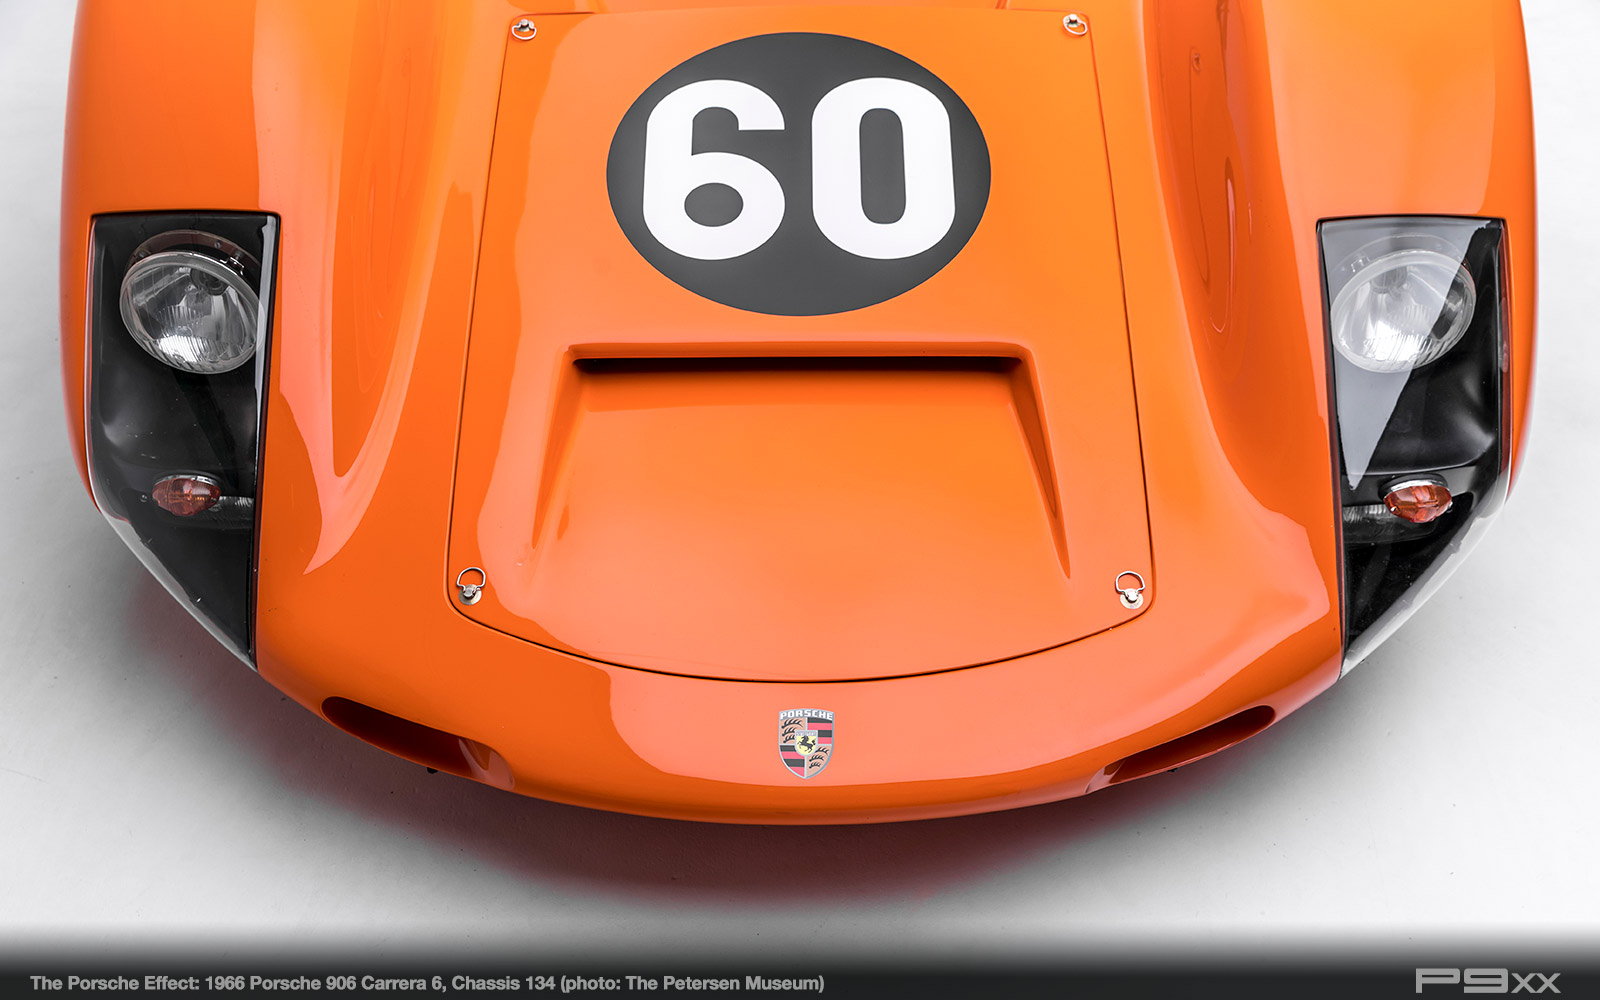 1964-906-Carrera-6-Chassis-134-Petersen-Automotive-Museum-The-Porsche-Effect-364